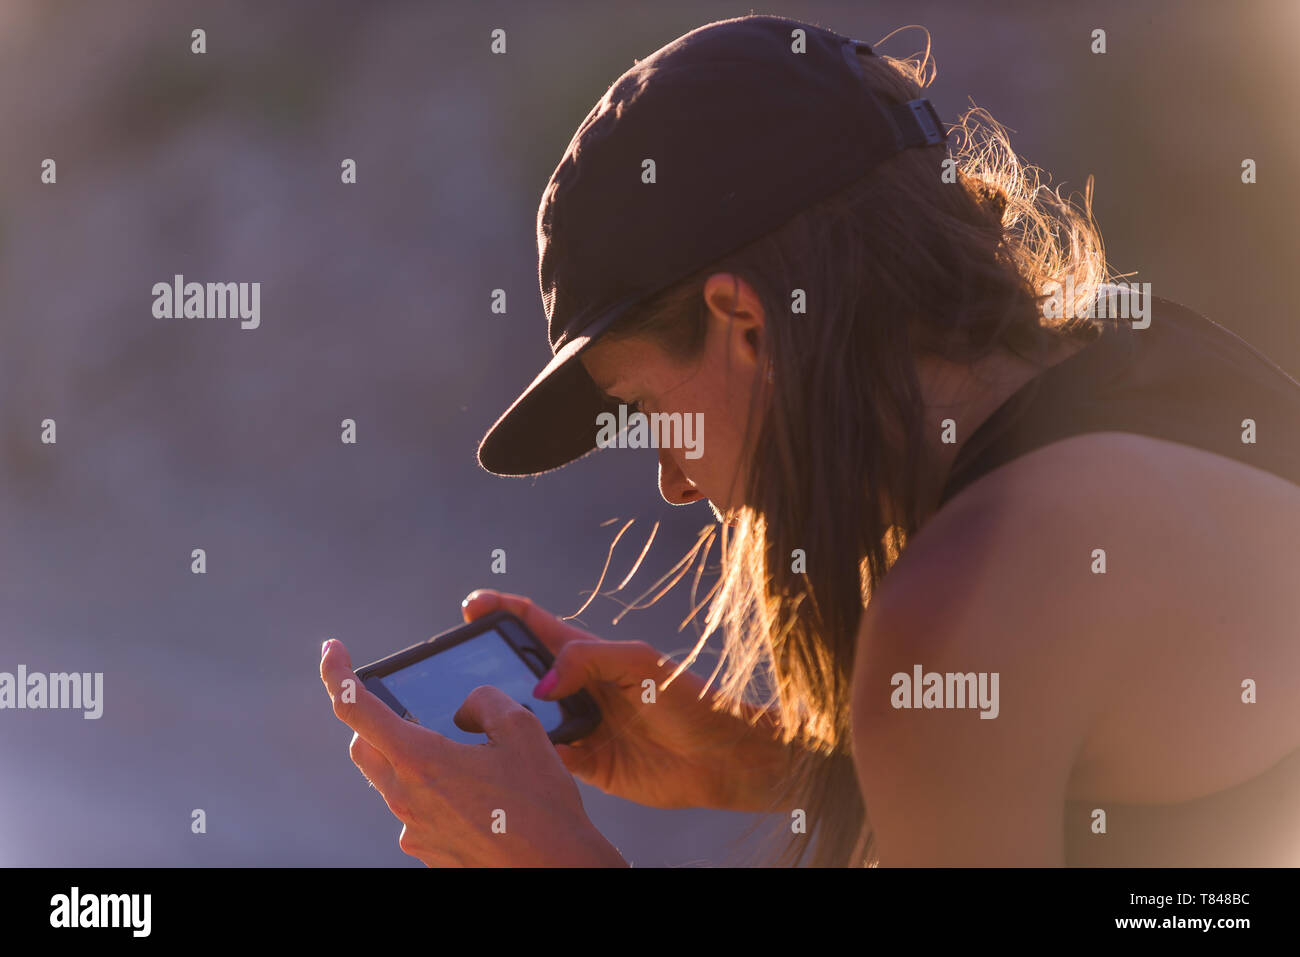 Woman operating drone (unmanned aerial vehicle) using smartphone - Stock Image